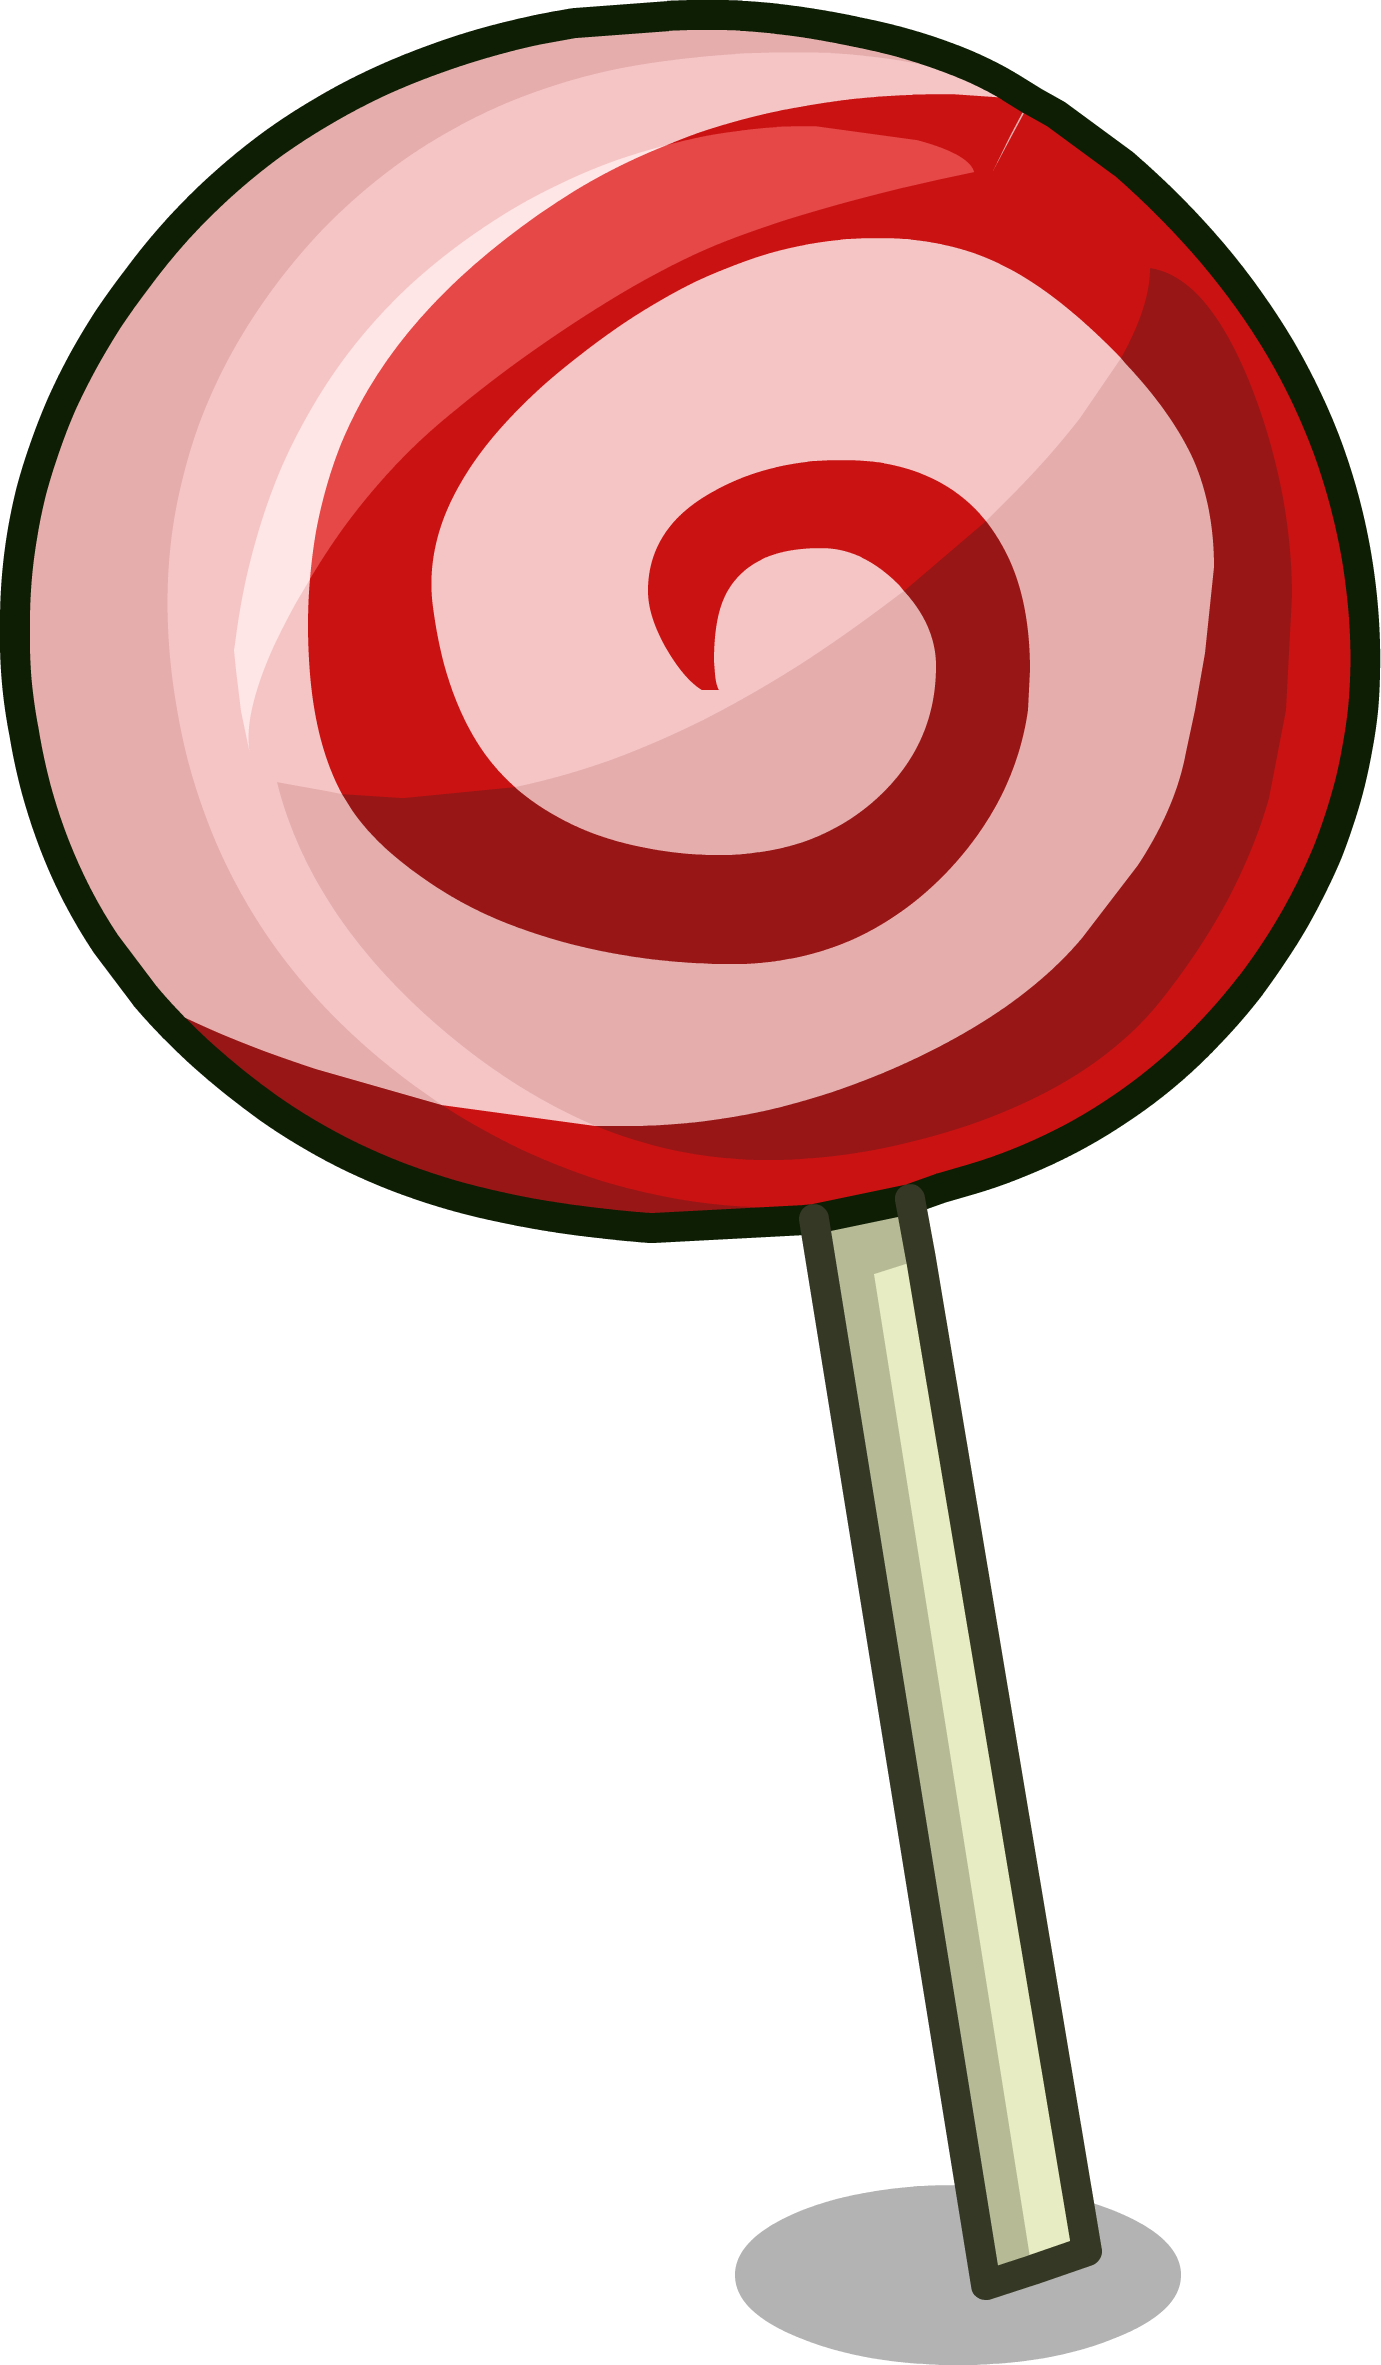 Lollipop drawing clipart.